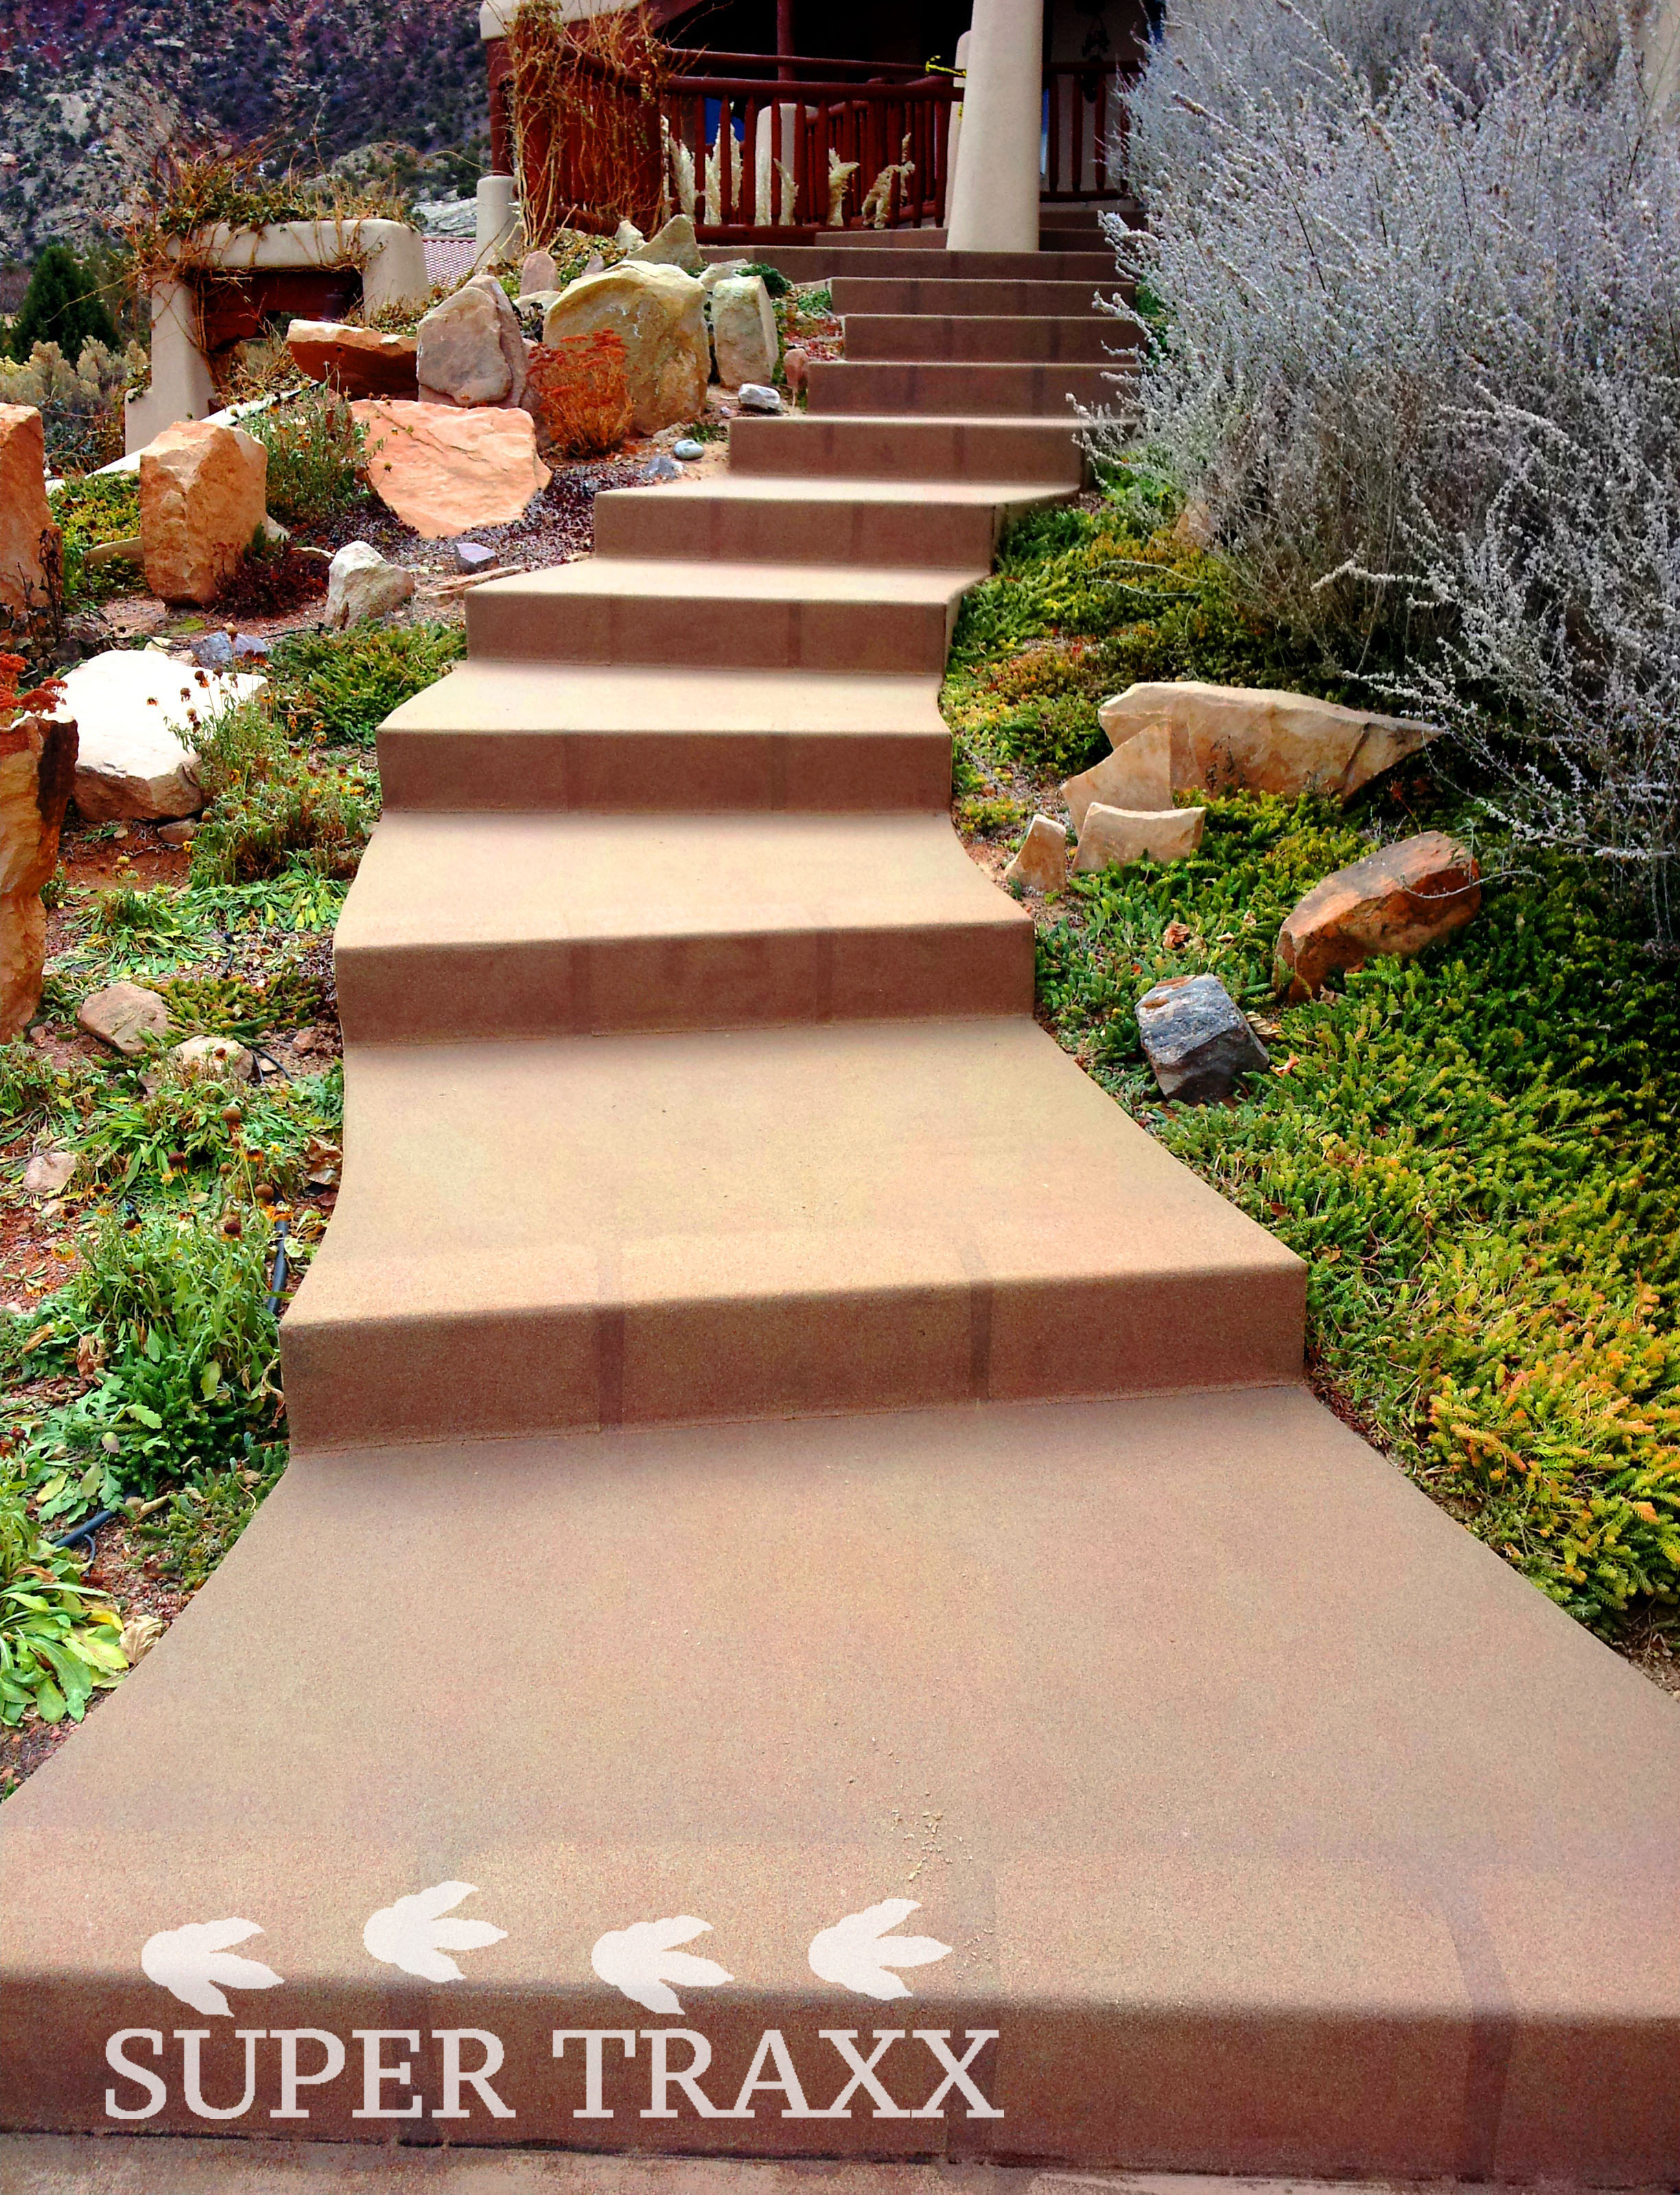 Super Traxx Outdoor Flexx quartz sanding on outdoor steps